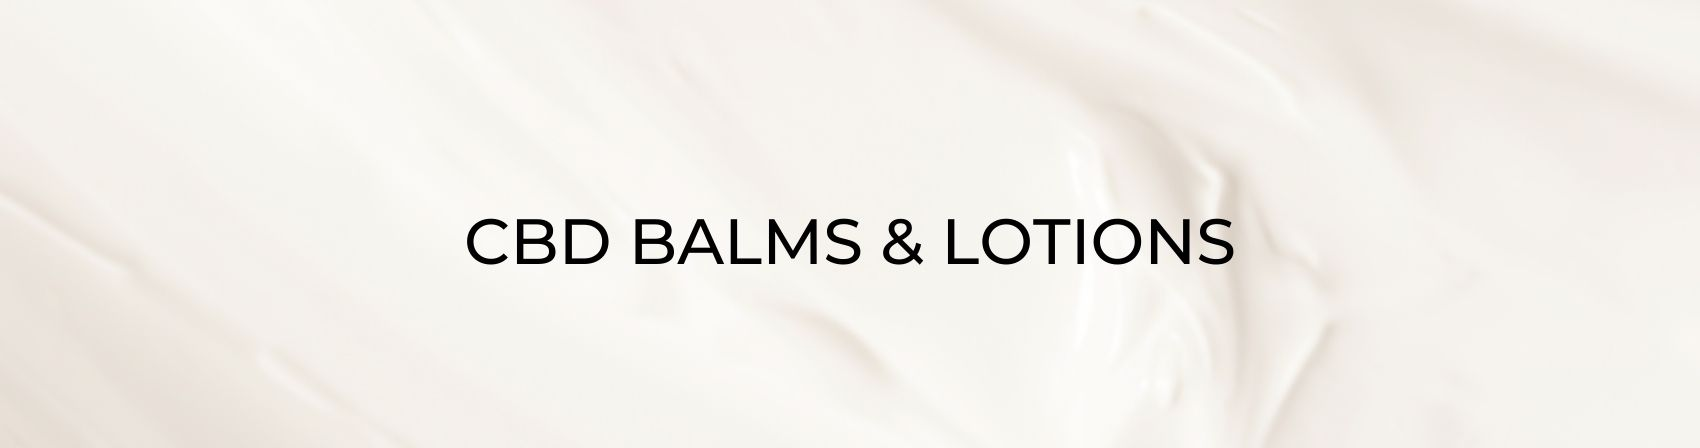 cbd balms and lotions